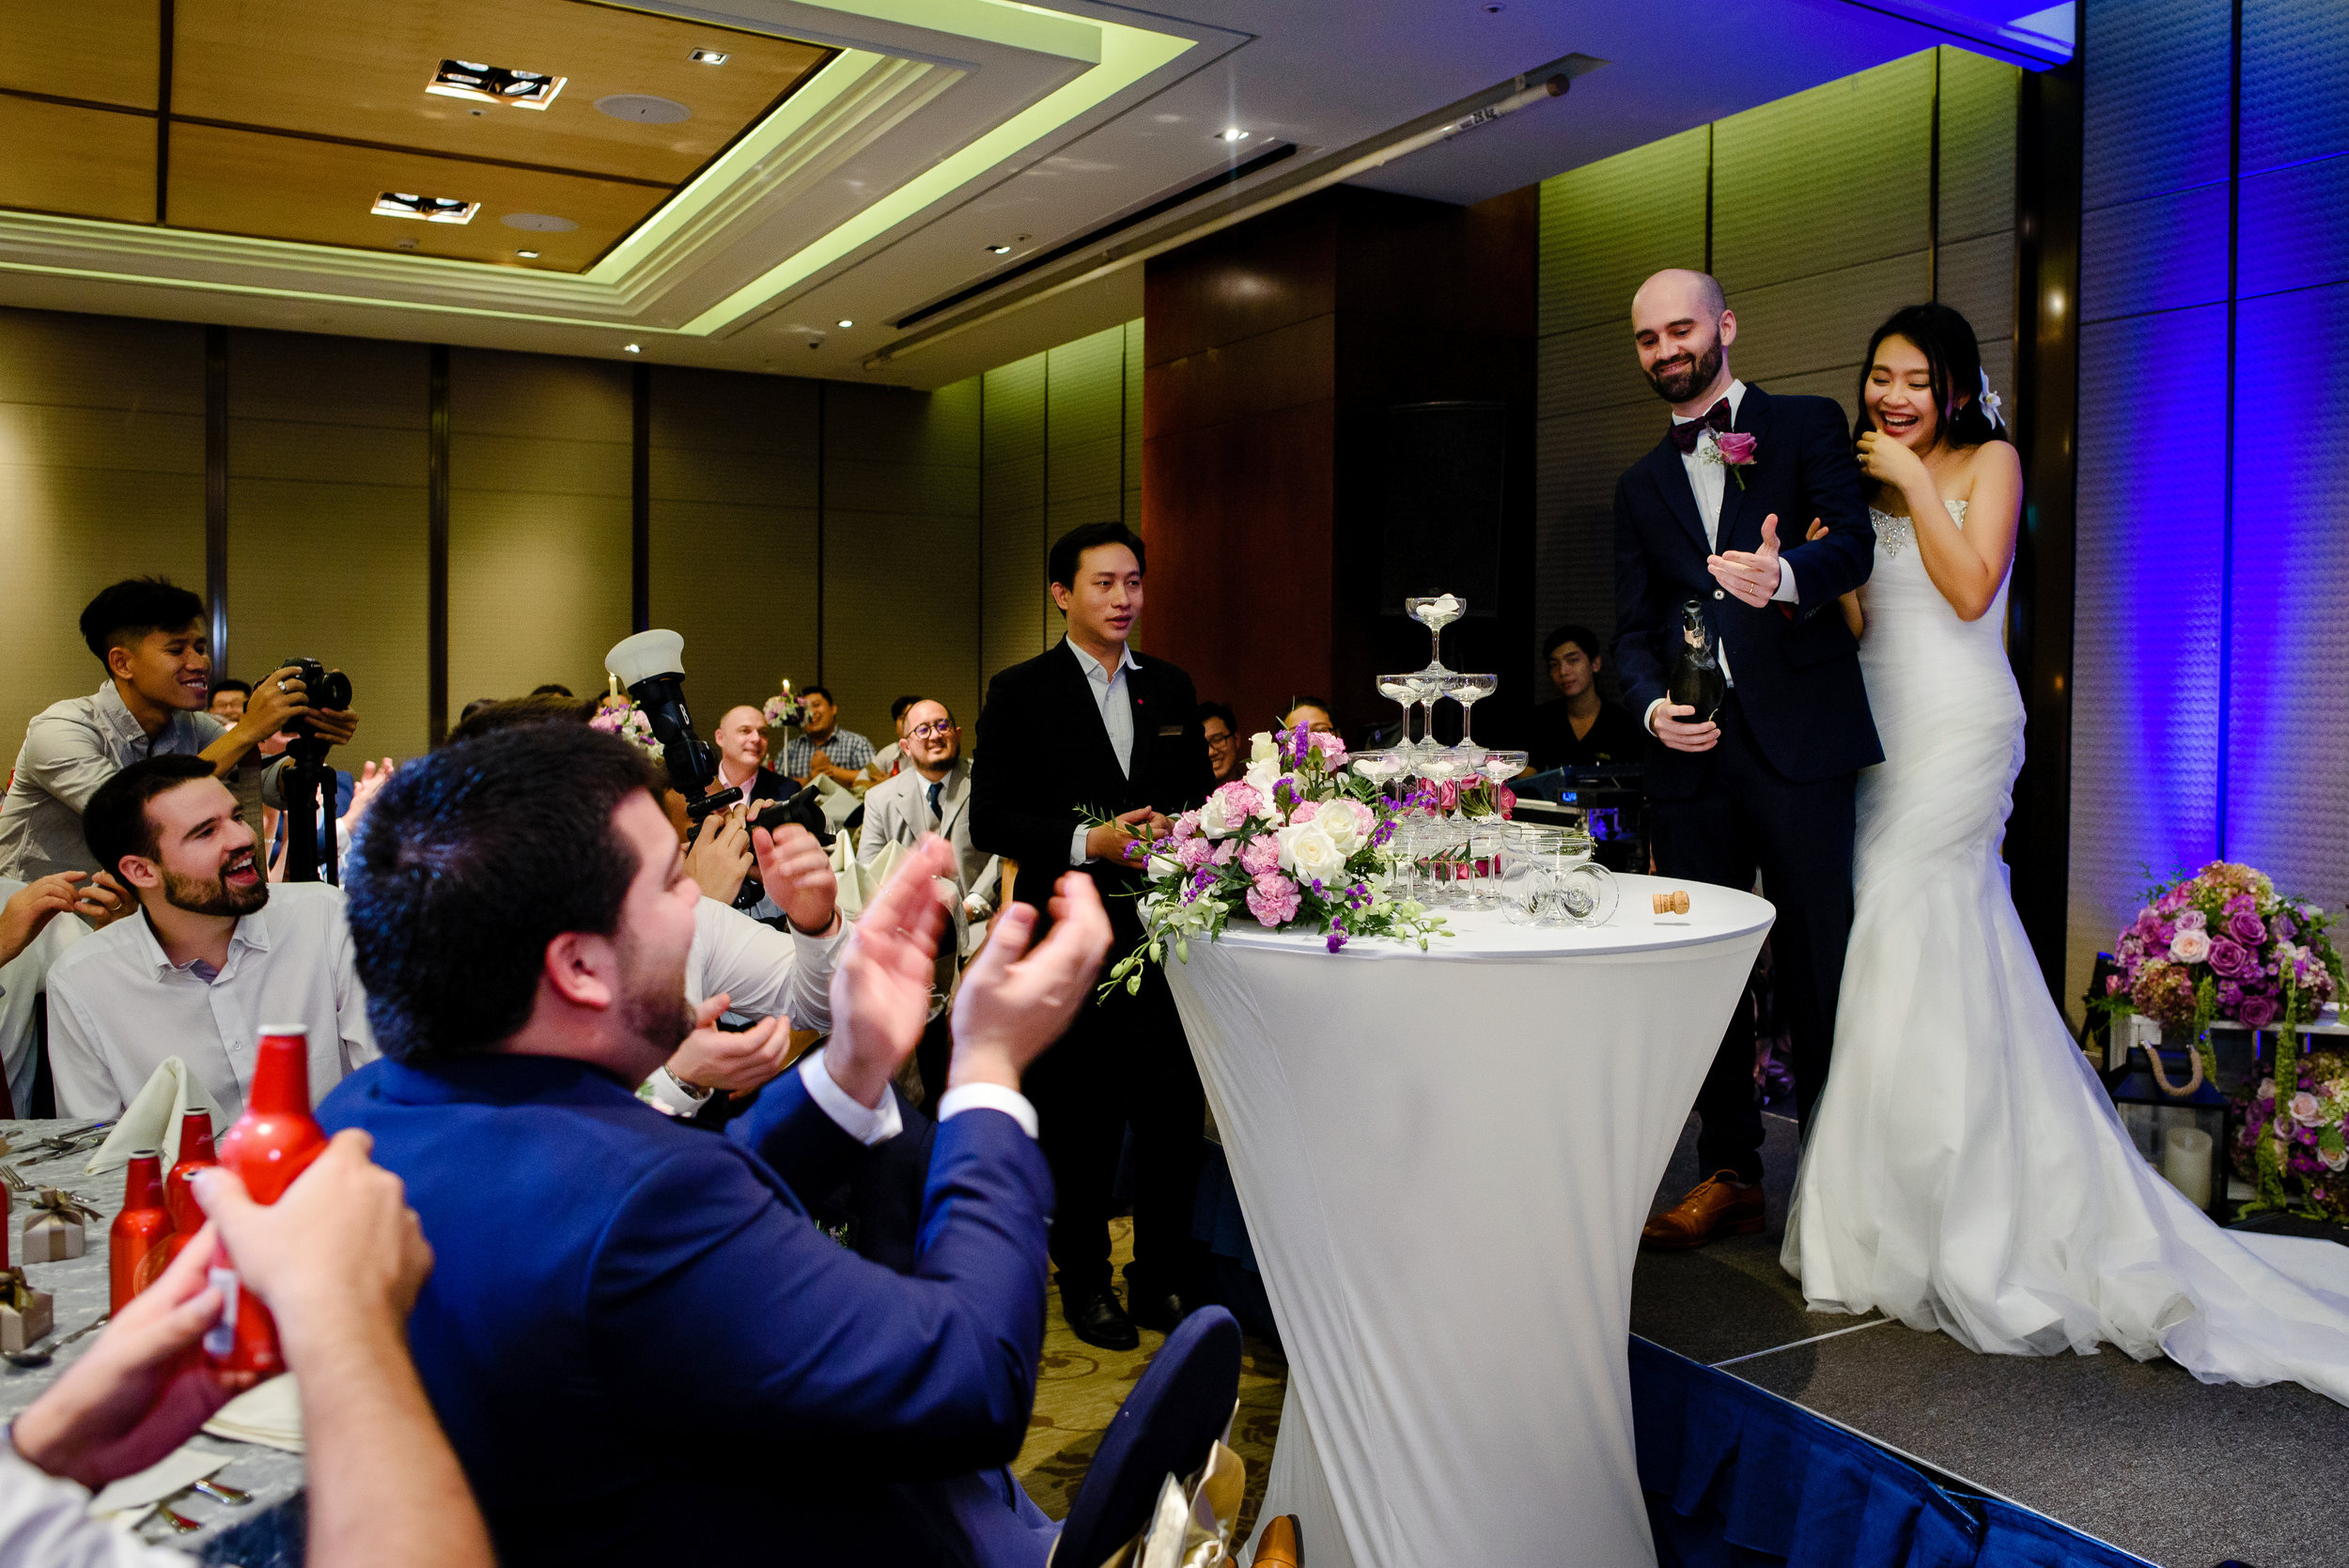 Jon-Hieu-wedding-legend-hotel-saigon-066.JPG